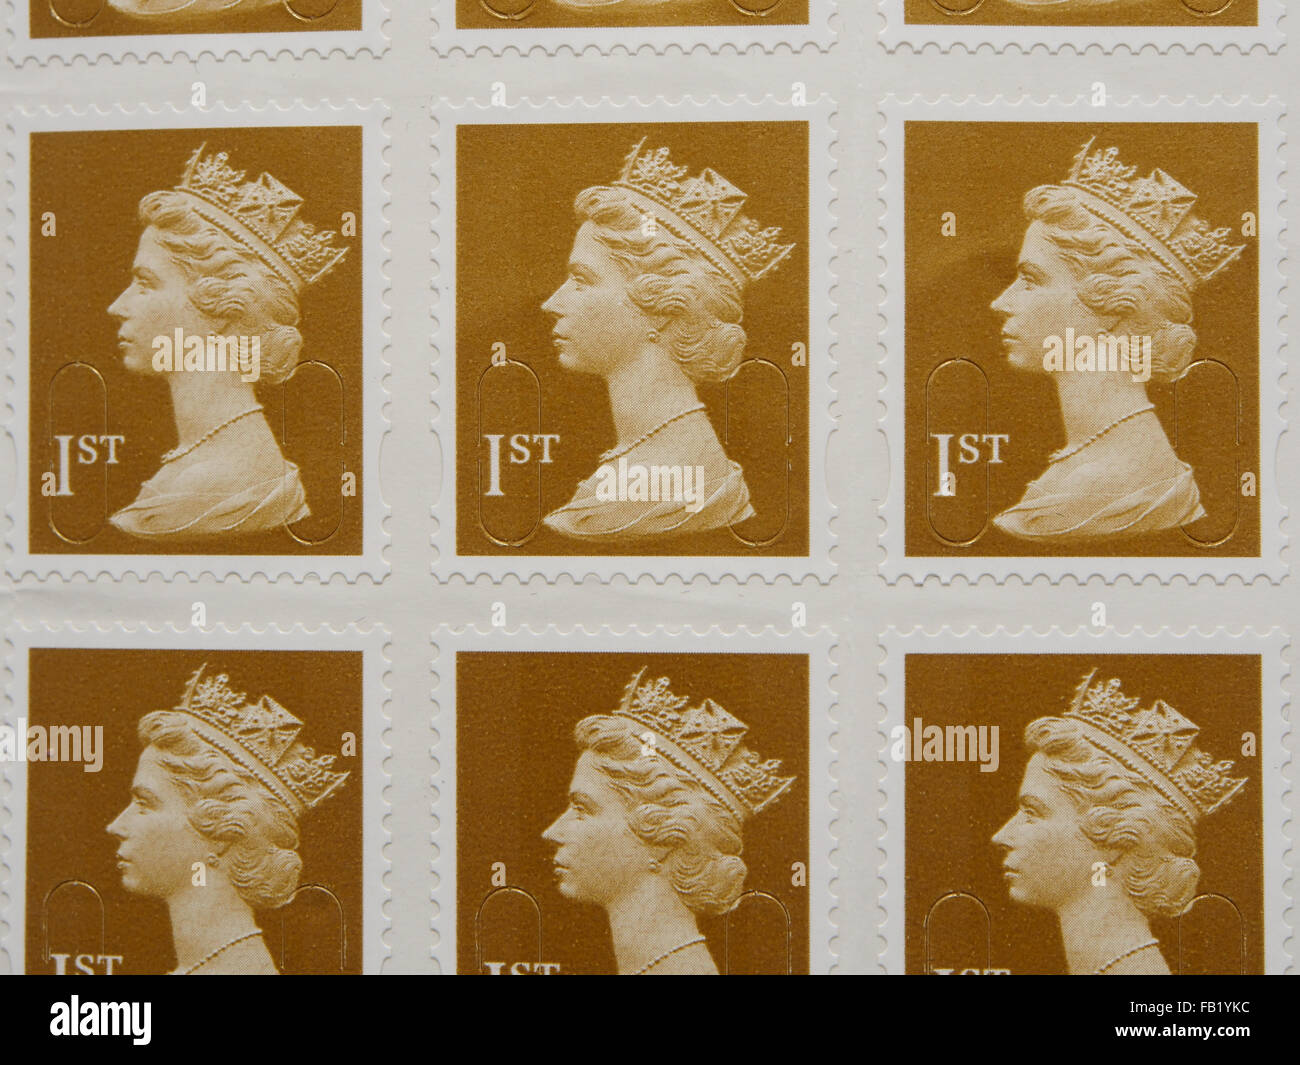 British First Class postage stamps - Stock Image